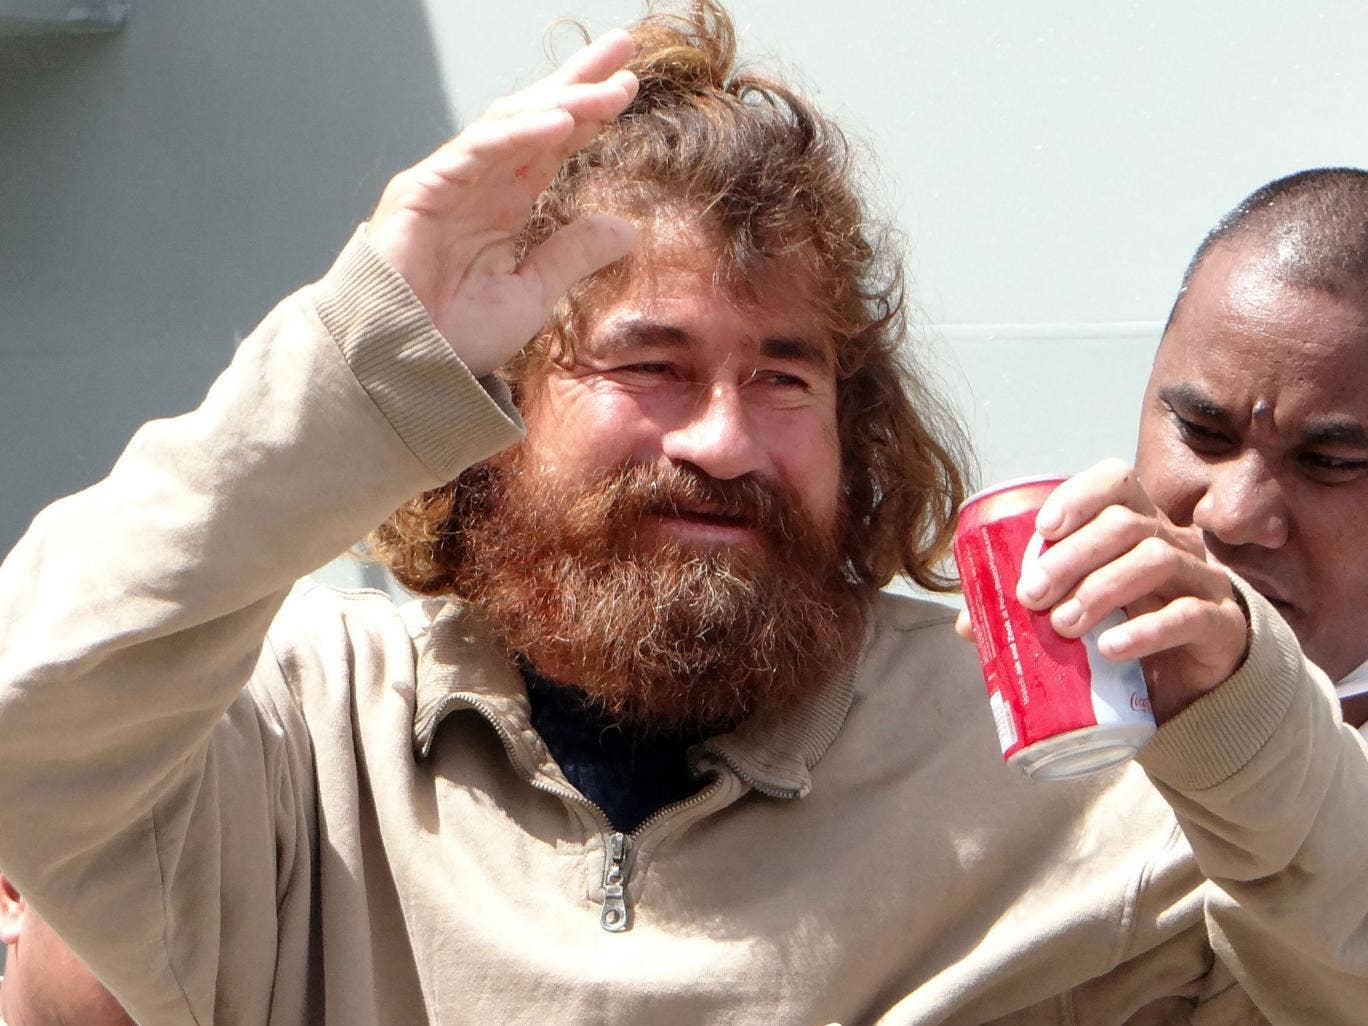 The Mexican castaway who identified himself as Jose Salvador Albarengo is pictured for the first time on his arrival in the Marshall Islands capital Majuro